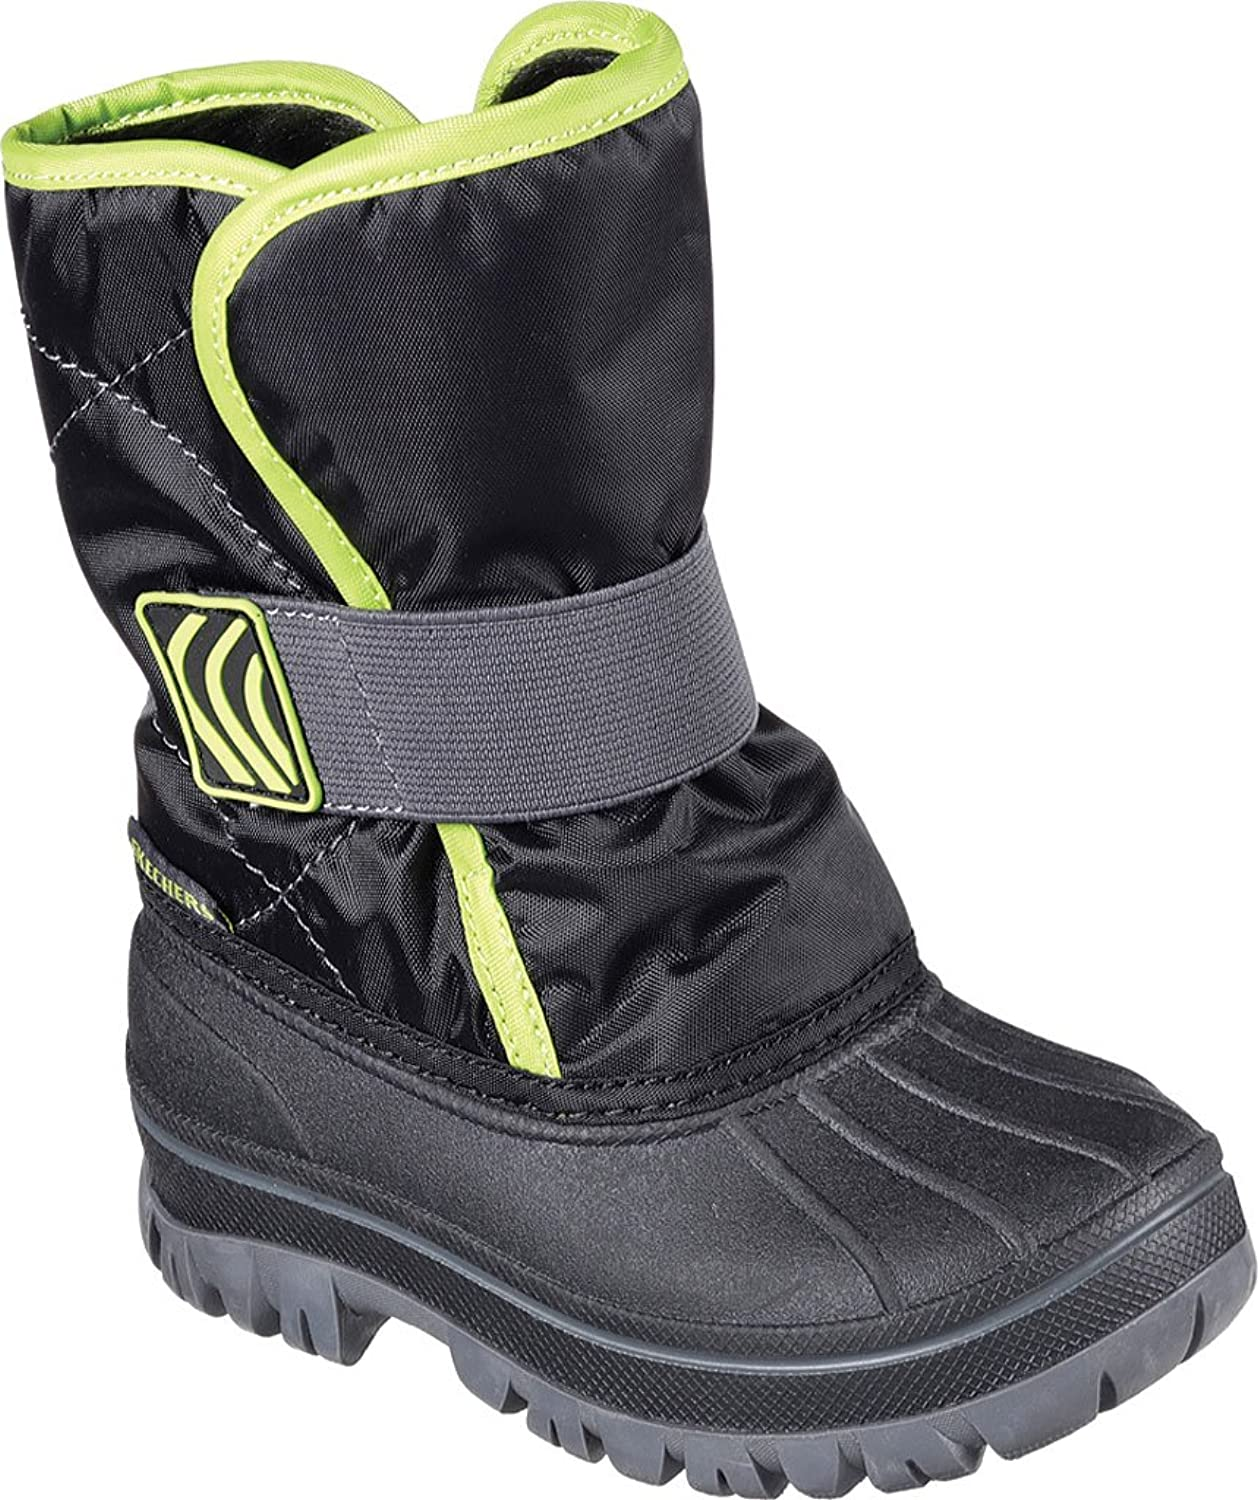 Skechers Infant Toddler Boys' Lil Frostie Cold Weather Boot